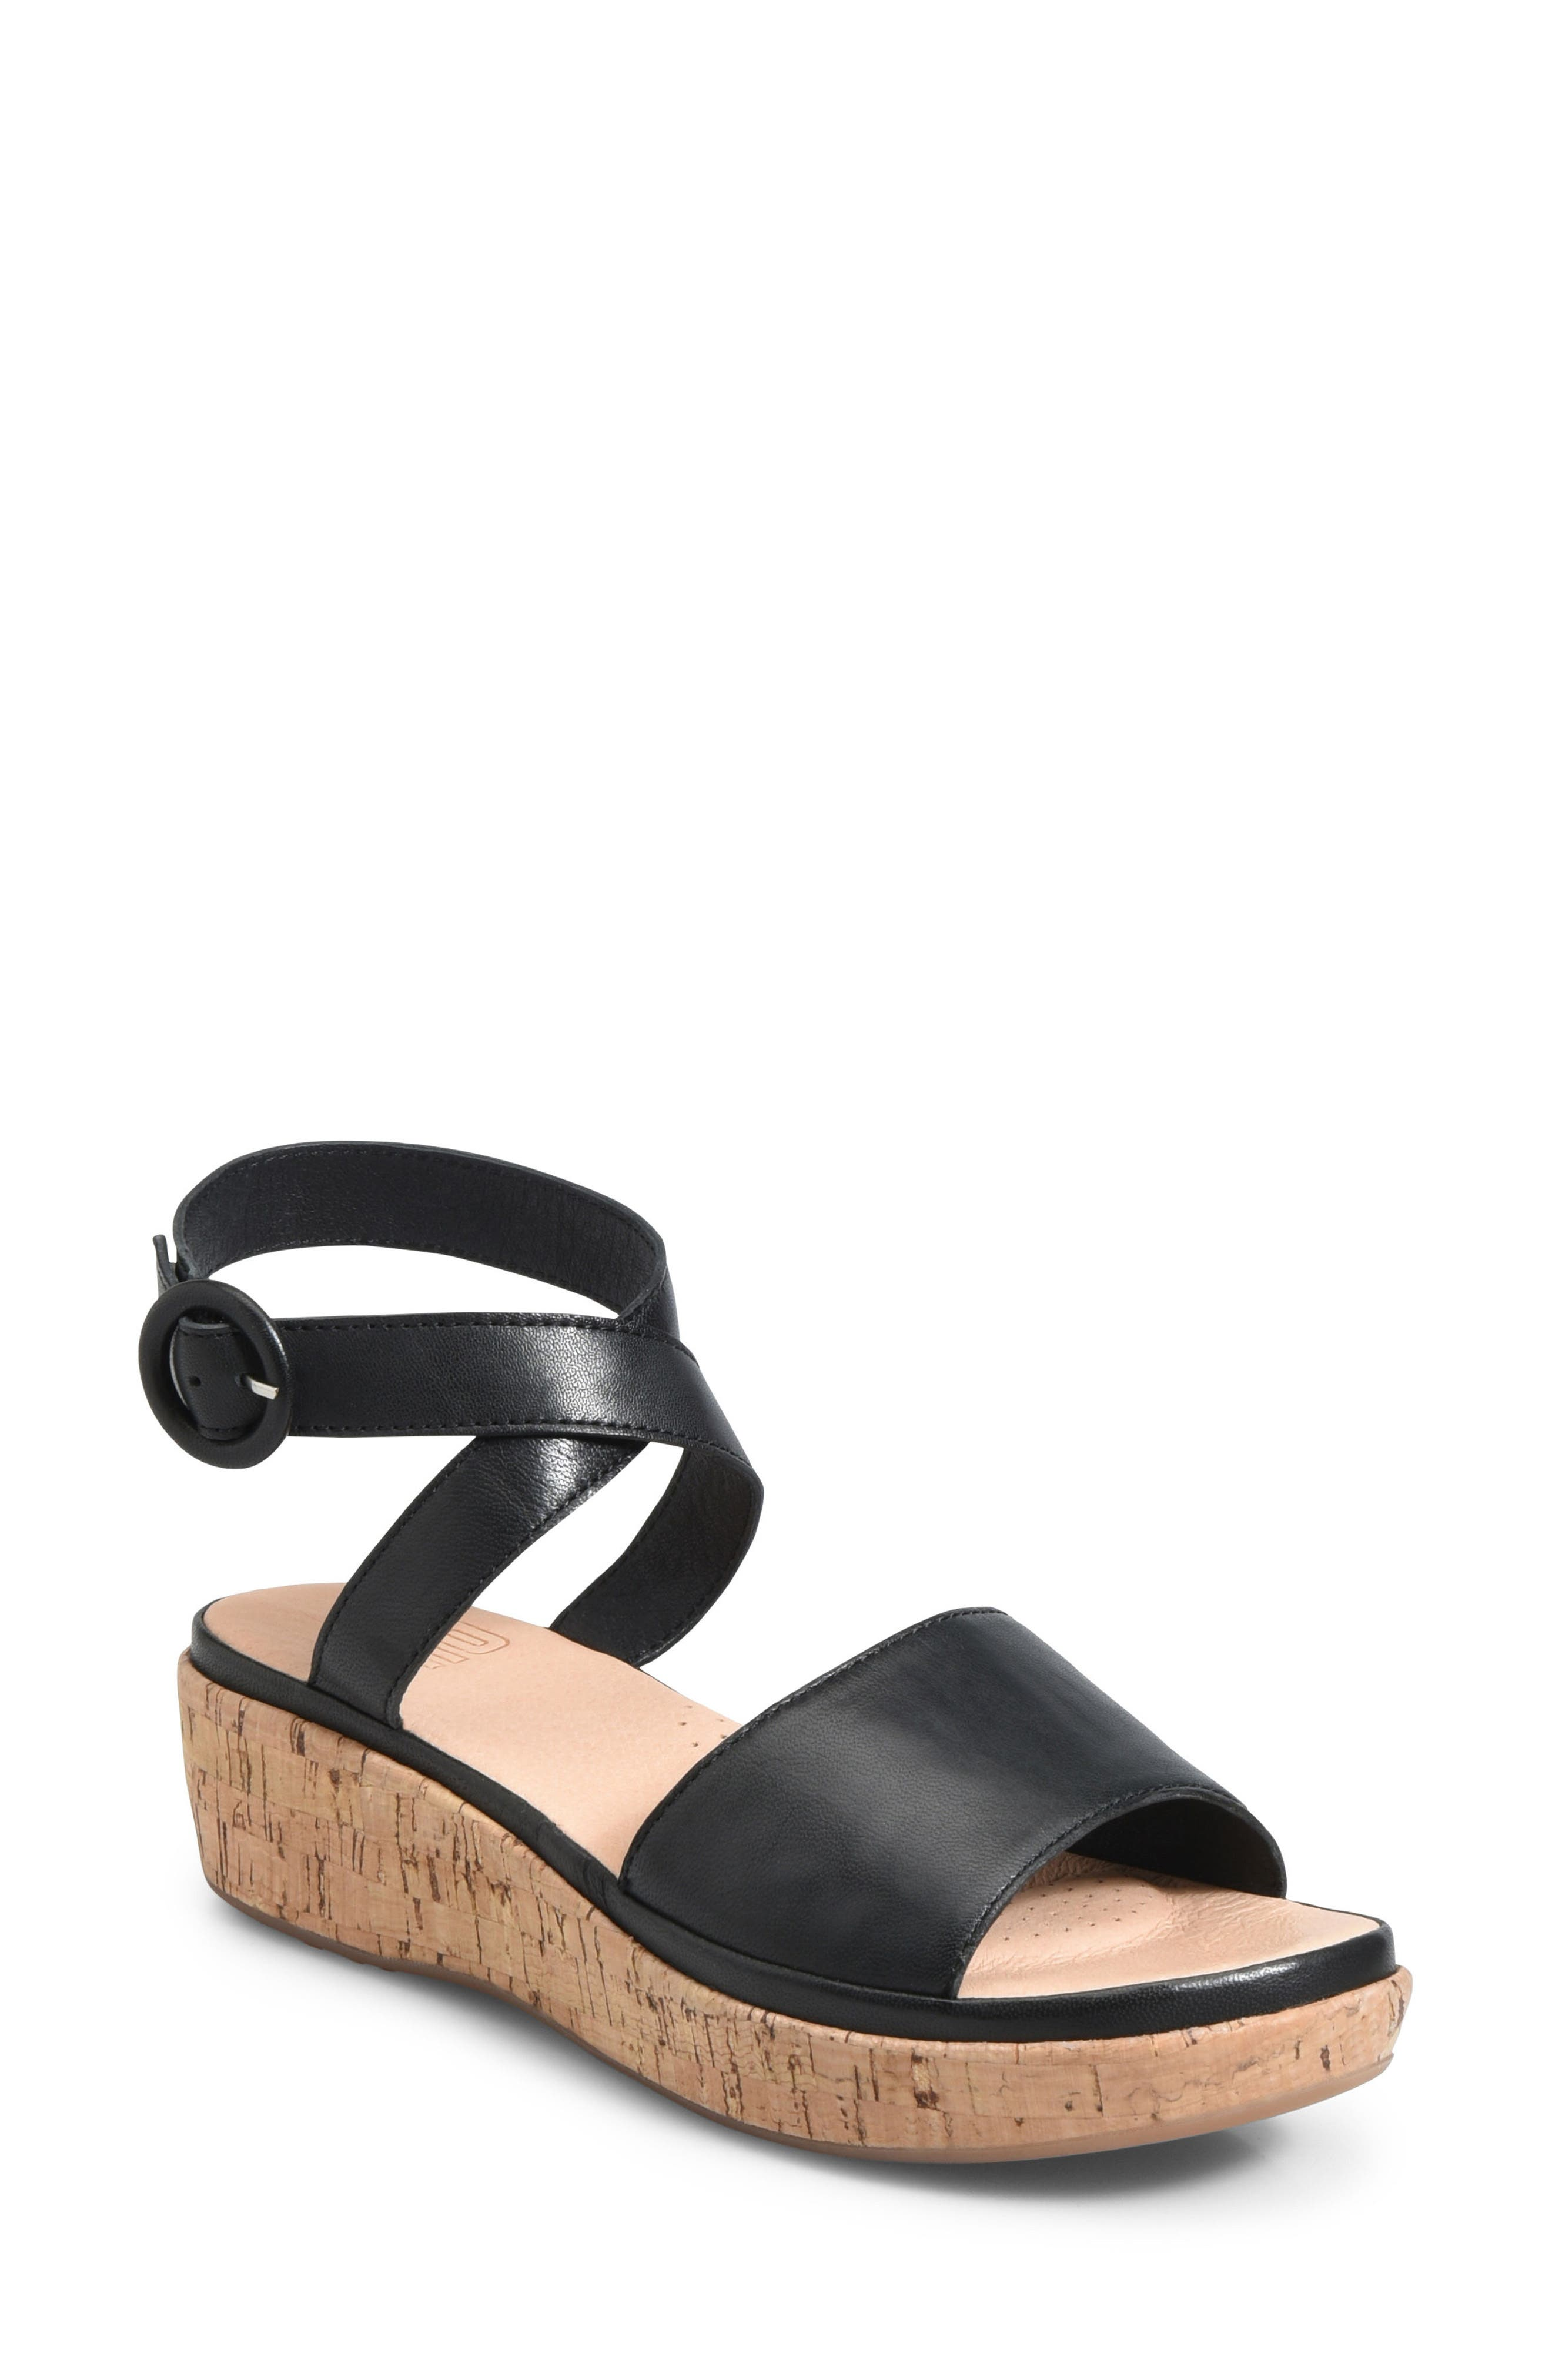 ONO Dreamy Platform Wedge Sandal (Women)